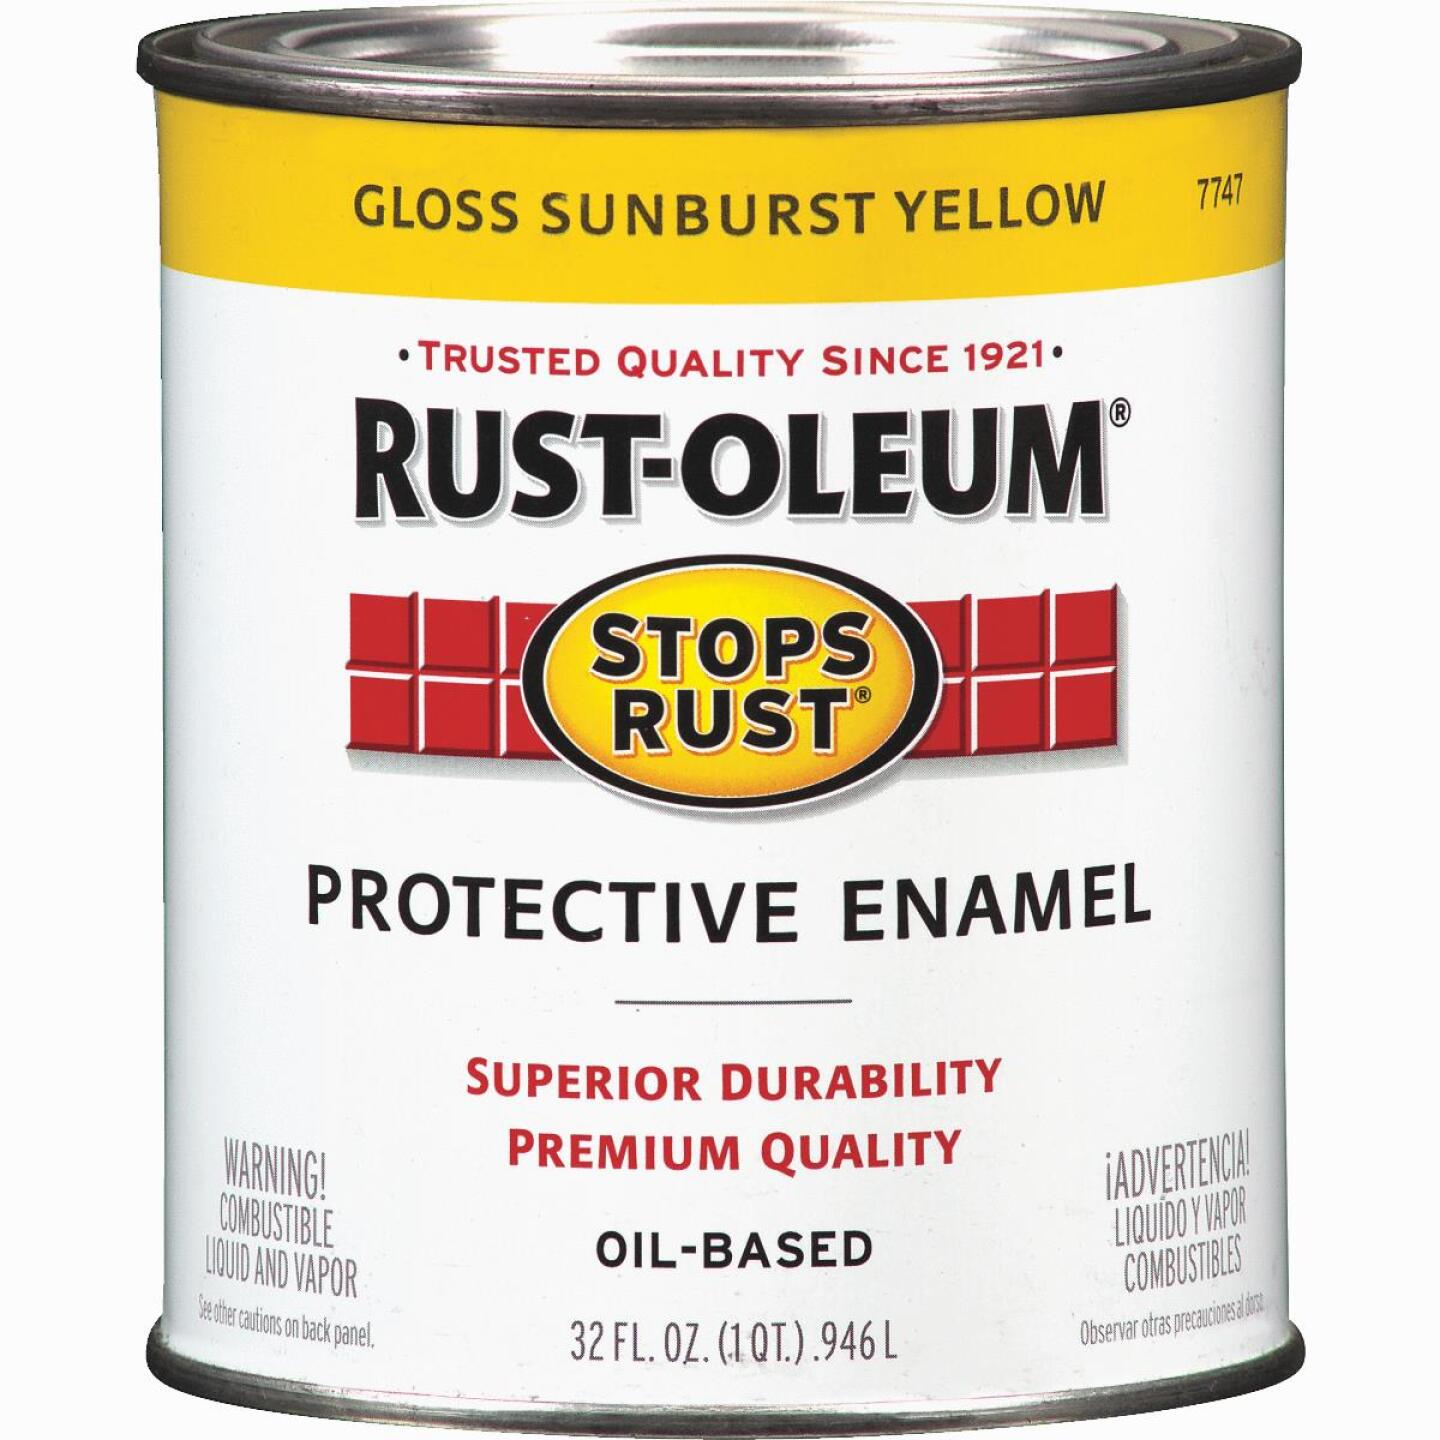 Rust-Oleum Stops Rust Oil Based Gloss Protective Rust Control Enamel, Sunburst Yellow, 1 Qt. Image 1